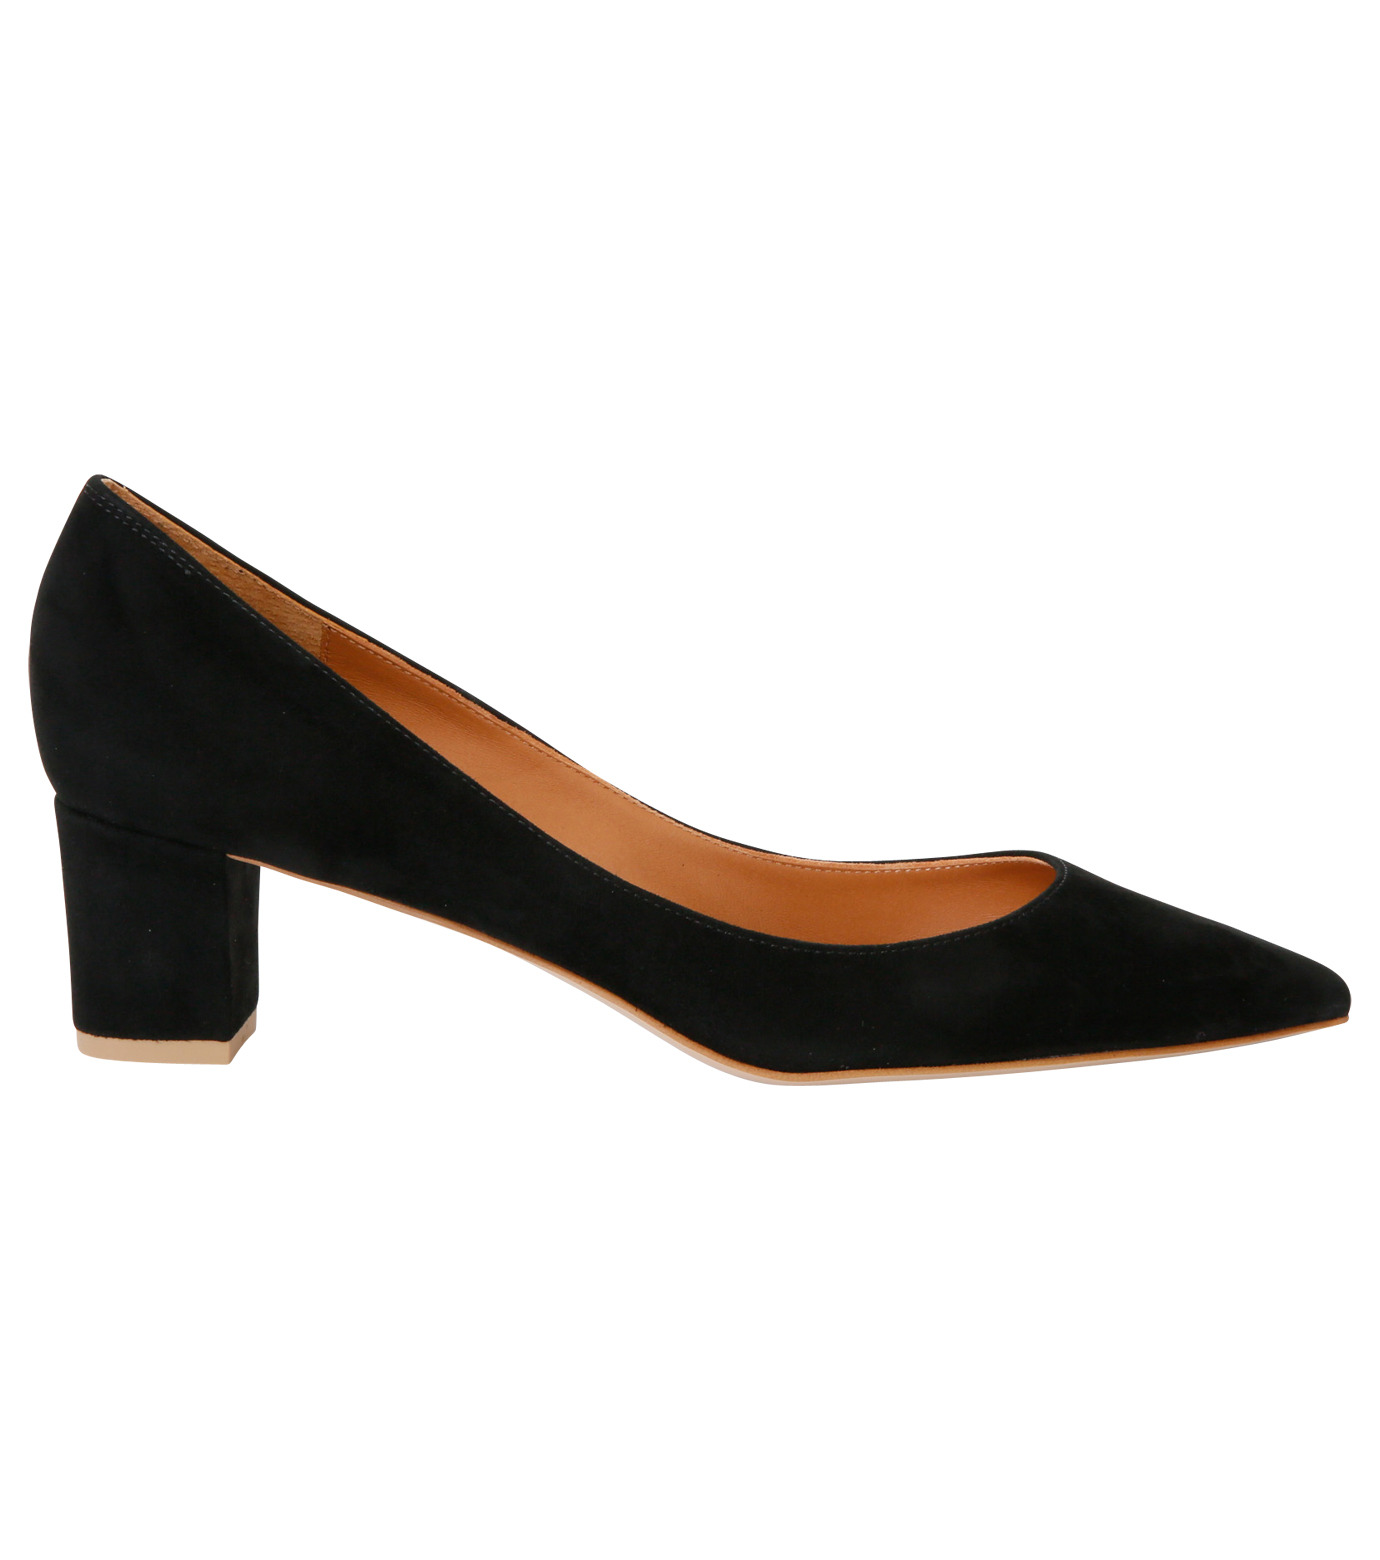 PIPPICHIC(ピッピシック)のPointed Toe 50mm Heel-BLACK(パンプス/pumps)-PP16S-CHR7-L-13 拡大詳細画像1